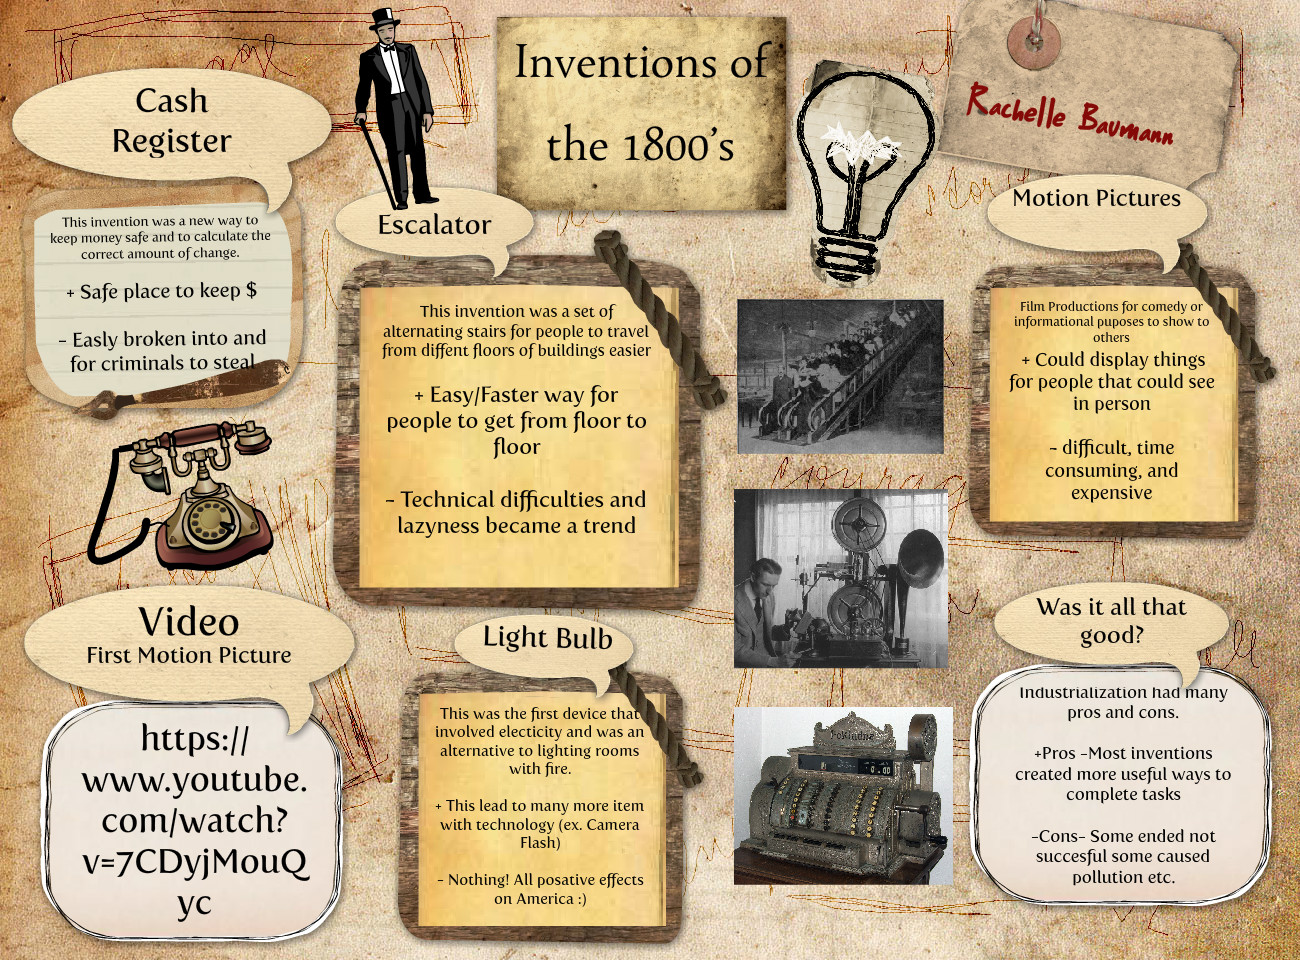 Inventions of the 1800's